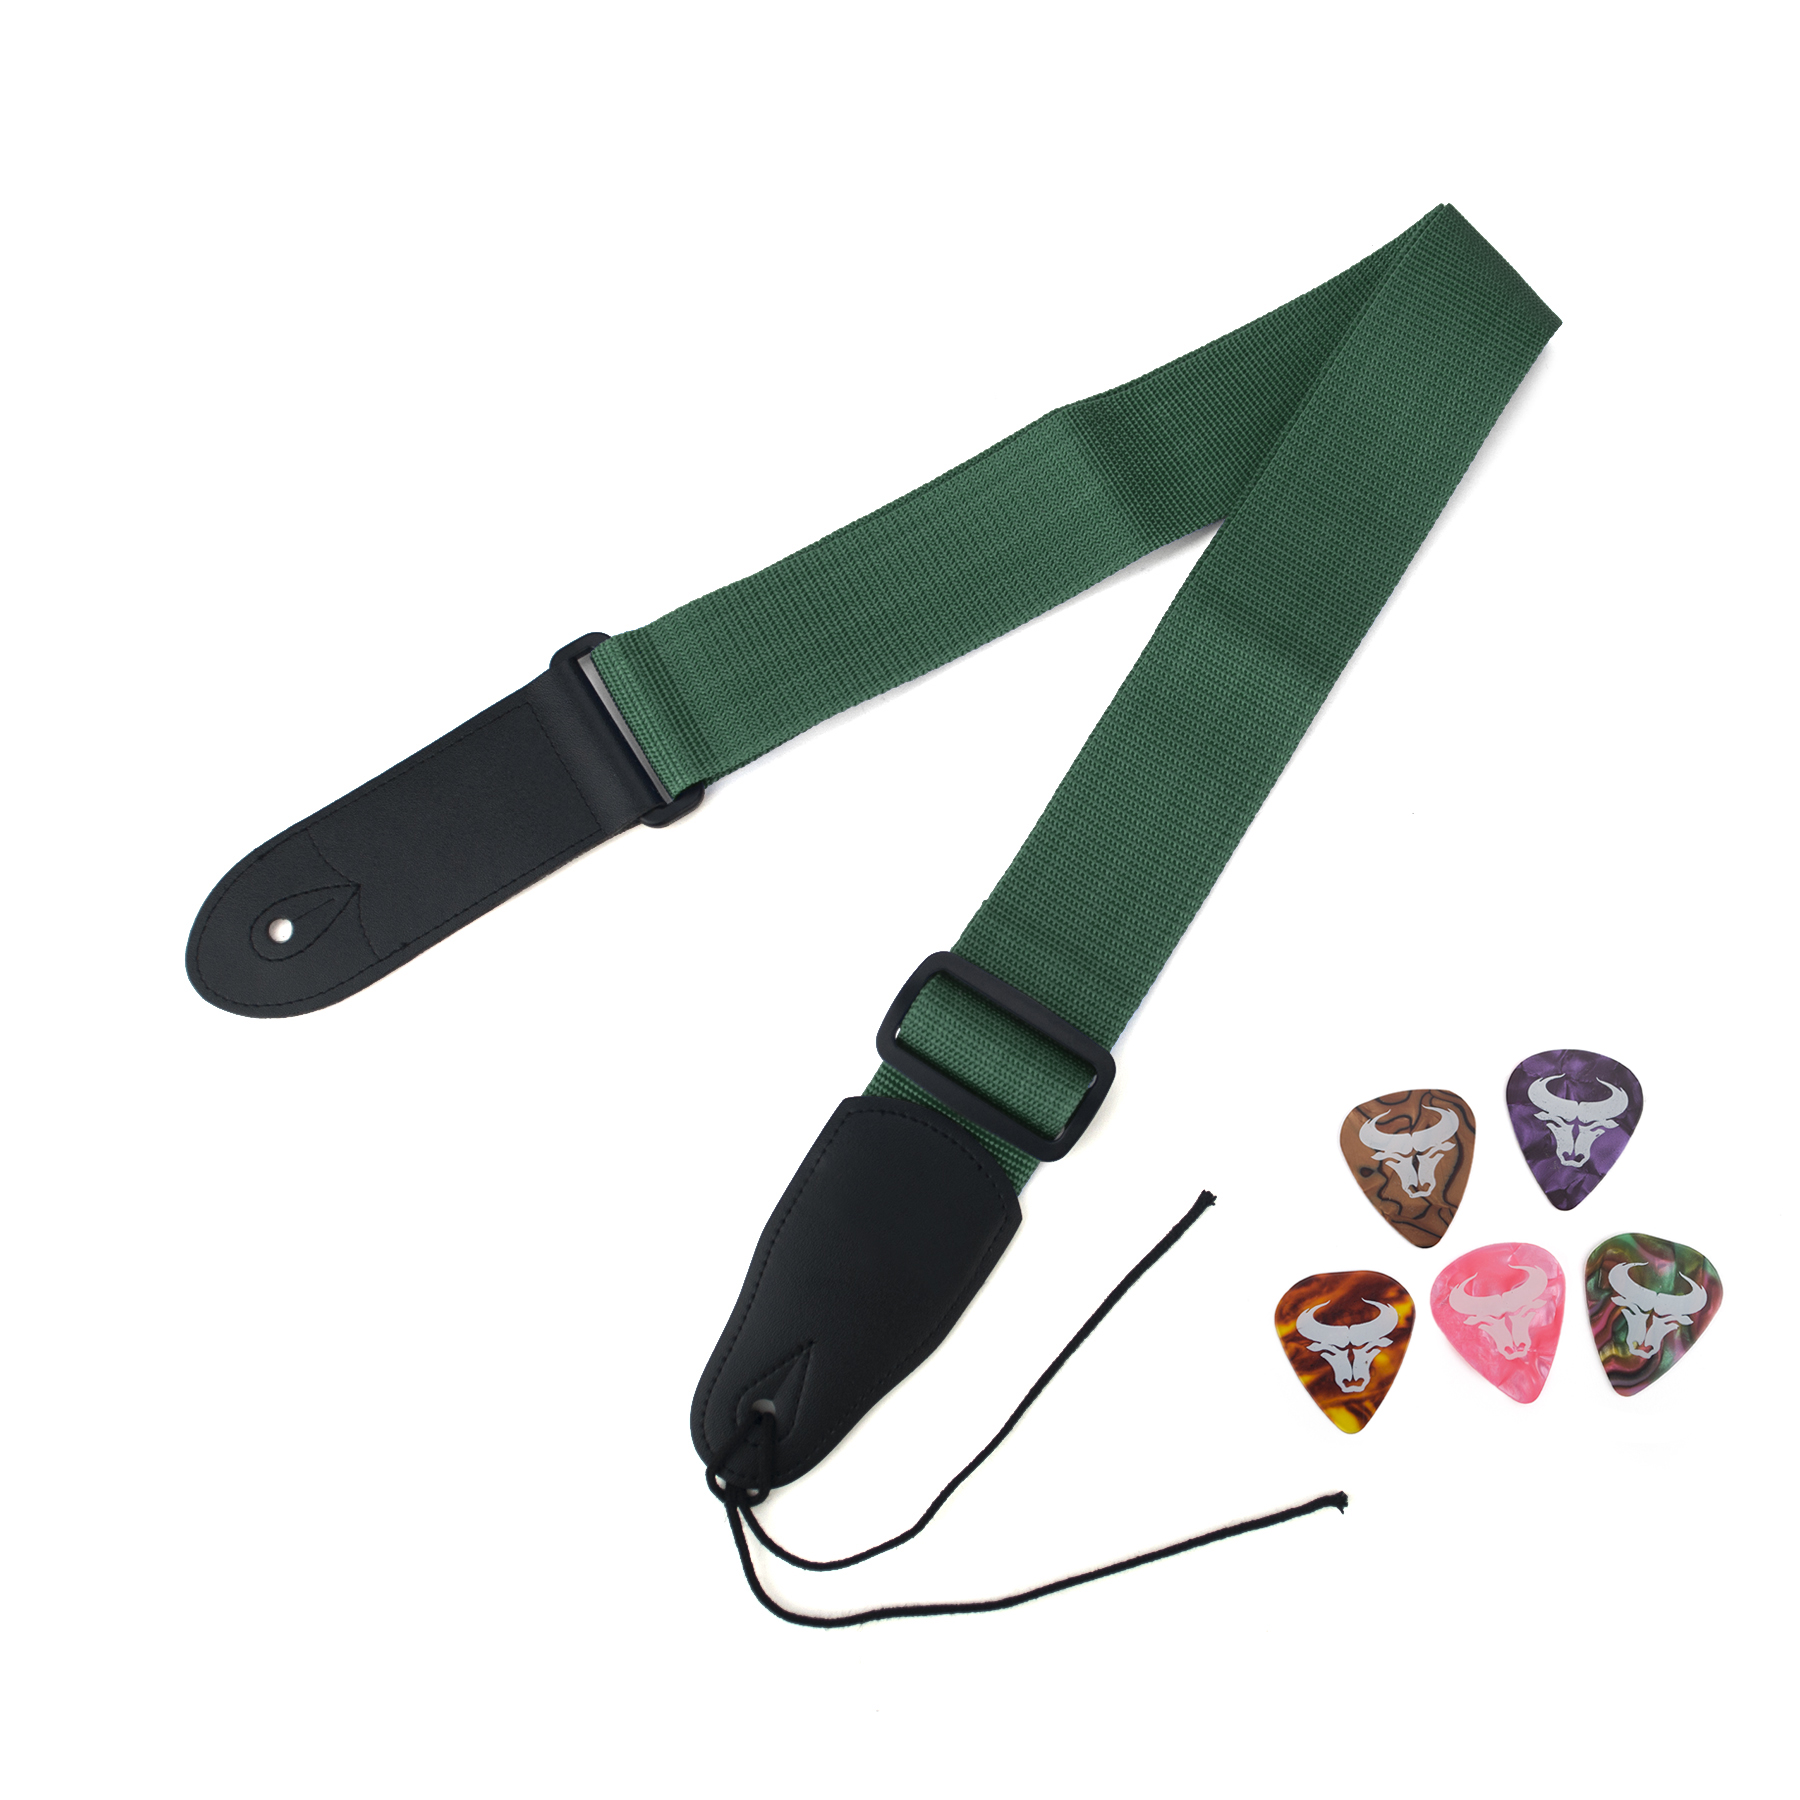 Aspire Guitar Strap Bass Strap with Leather Ends, 5 Pcs Guitar Picks, Ties for Acoustic Guitars-Blue